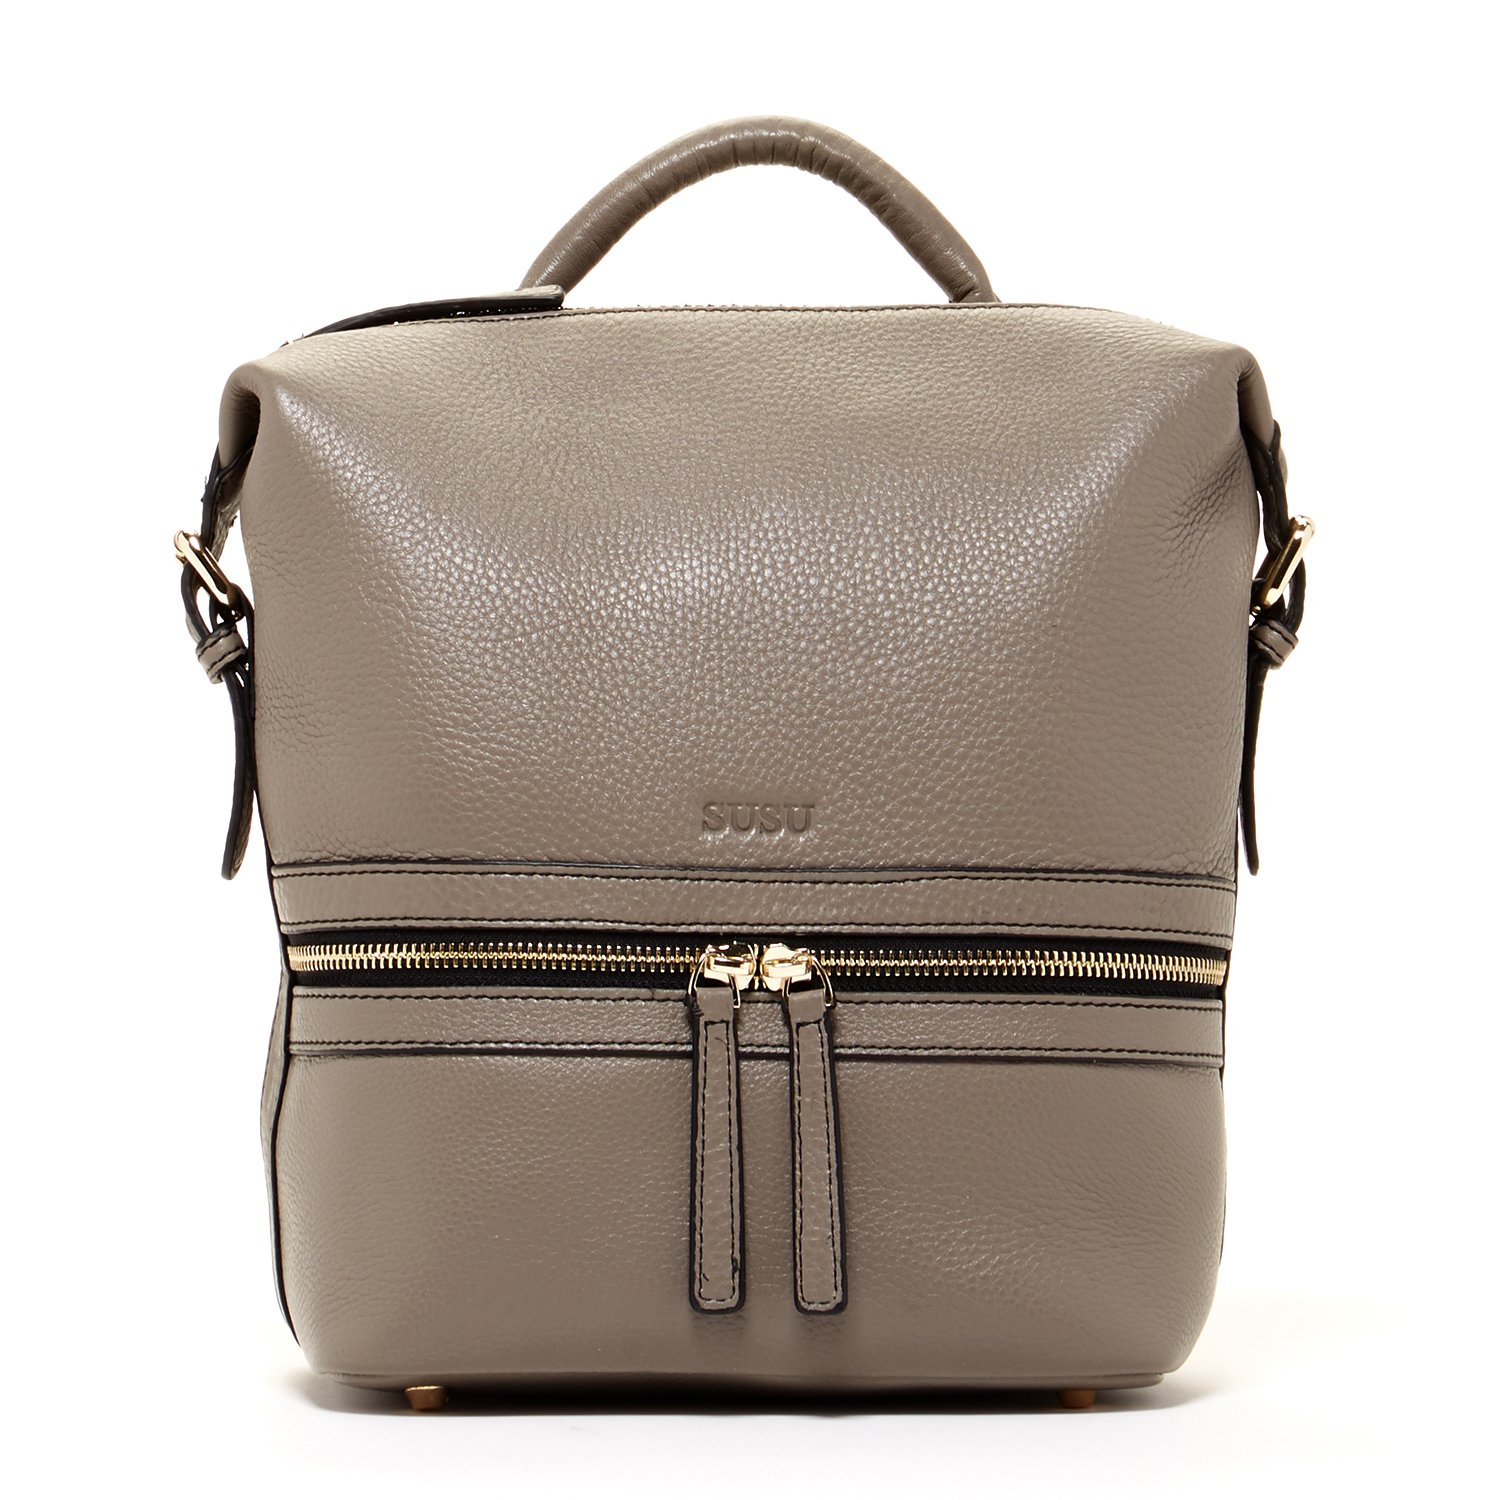 SUSU Genuine Leather Backpack for Women Elephant Grey Backpacks For Women Gray Stylish Backpack Purse Designer Handbags Pebbled Genuine Leather Fashionable Bags with Light Gold Front Zipper Pockets